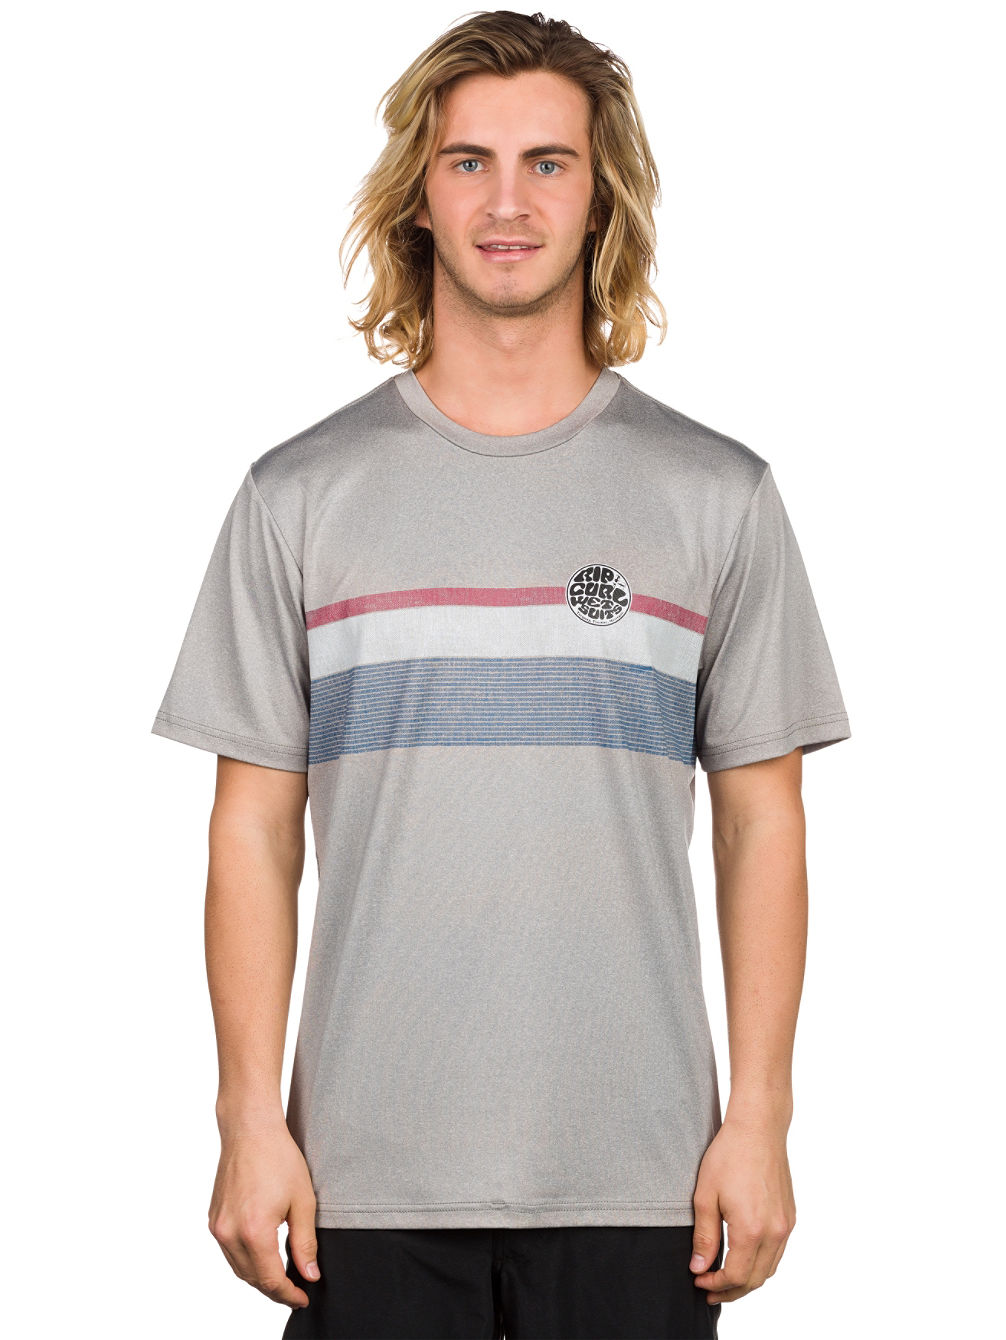 rip-curl-surf-craft-ss-surf-shirt